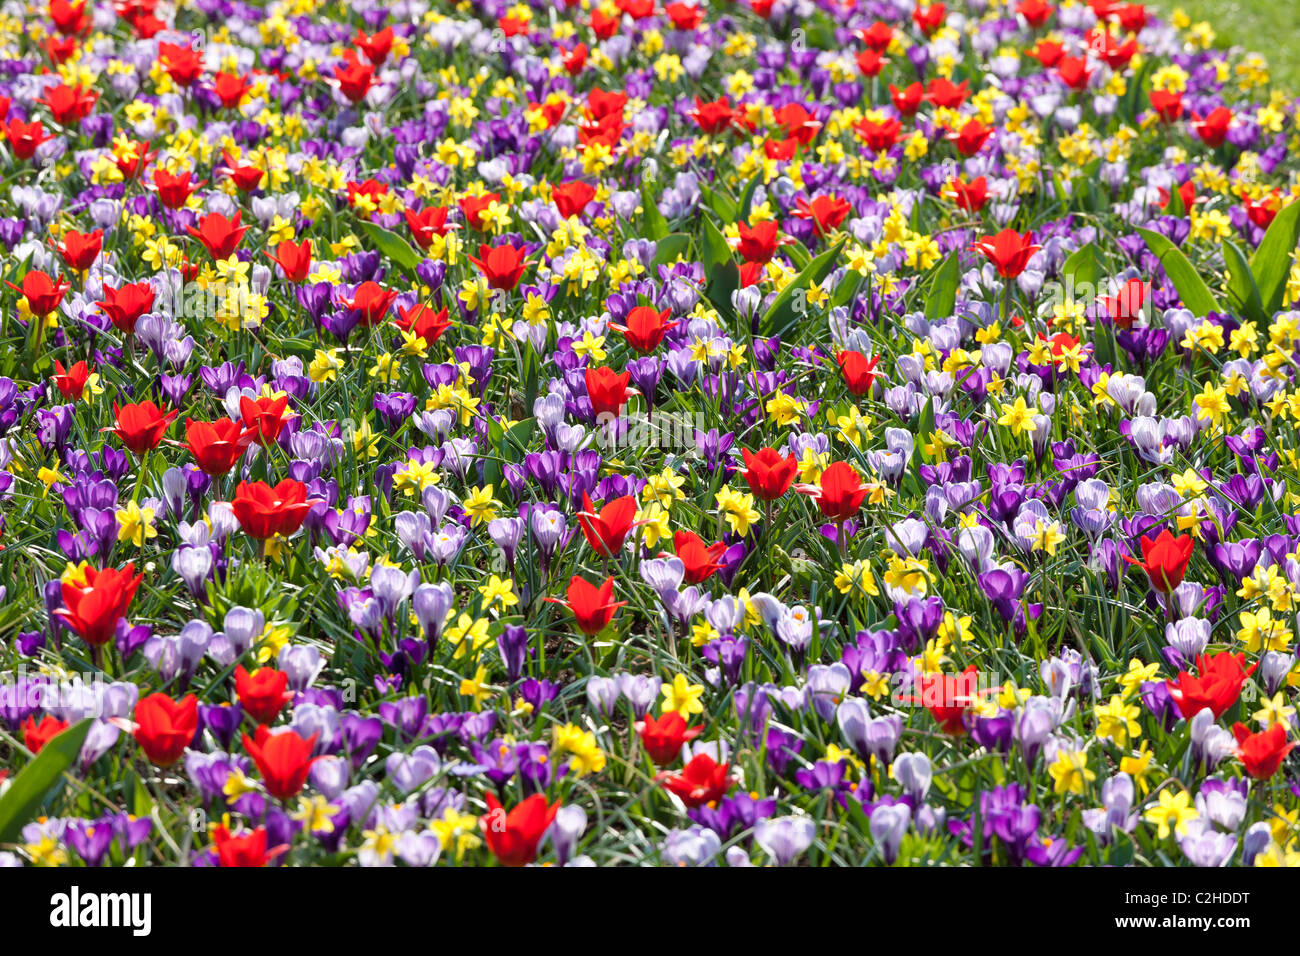 A mixed flower bed with daffodils tulips and crocuses like a wild meadow. Keukenhof Bulb Garden in Lisse Holland - Stock Image